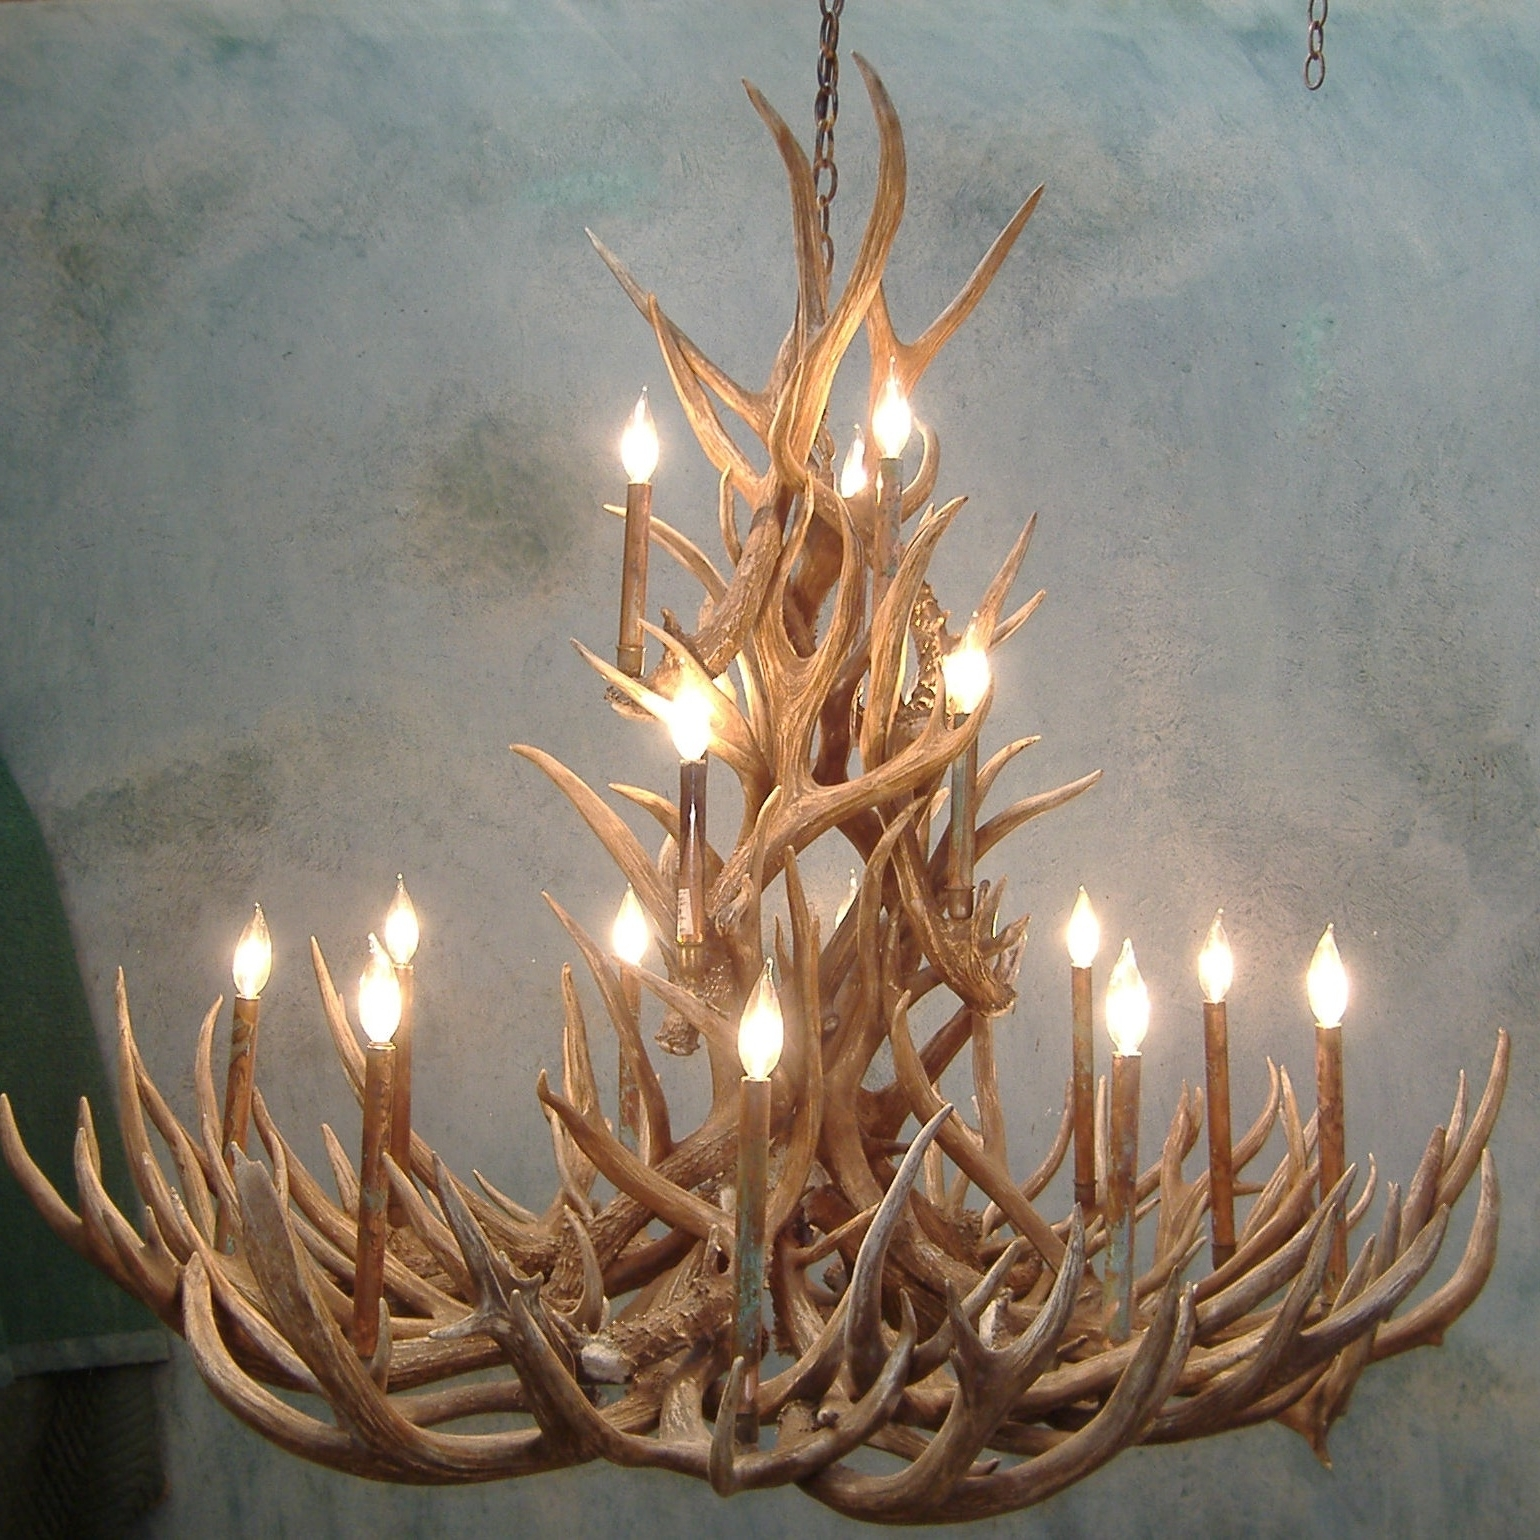 Spruce Mule Deer Antler Chandelier Intended For Most Recent Antlers Chandeliers (View 12 of 15)